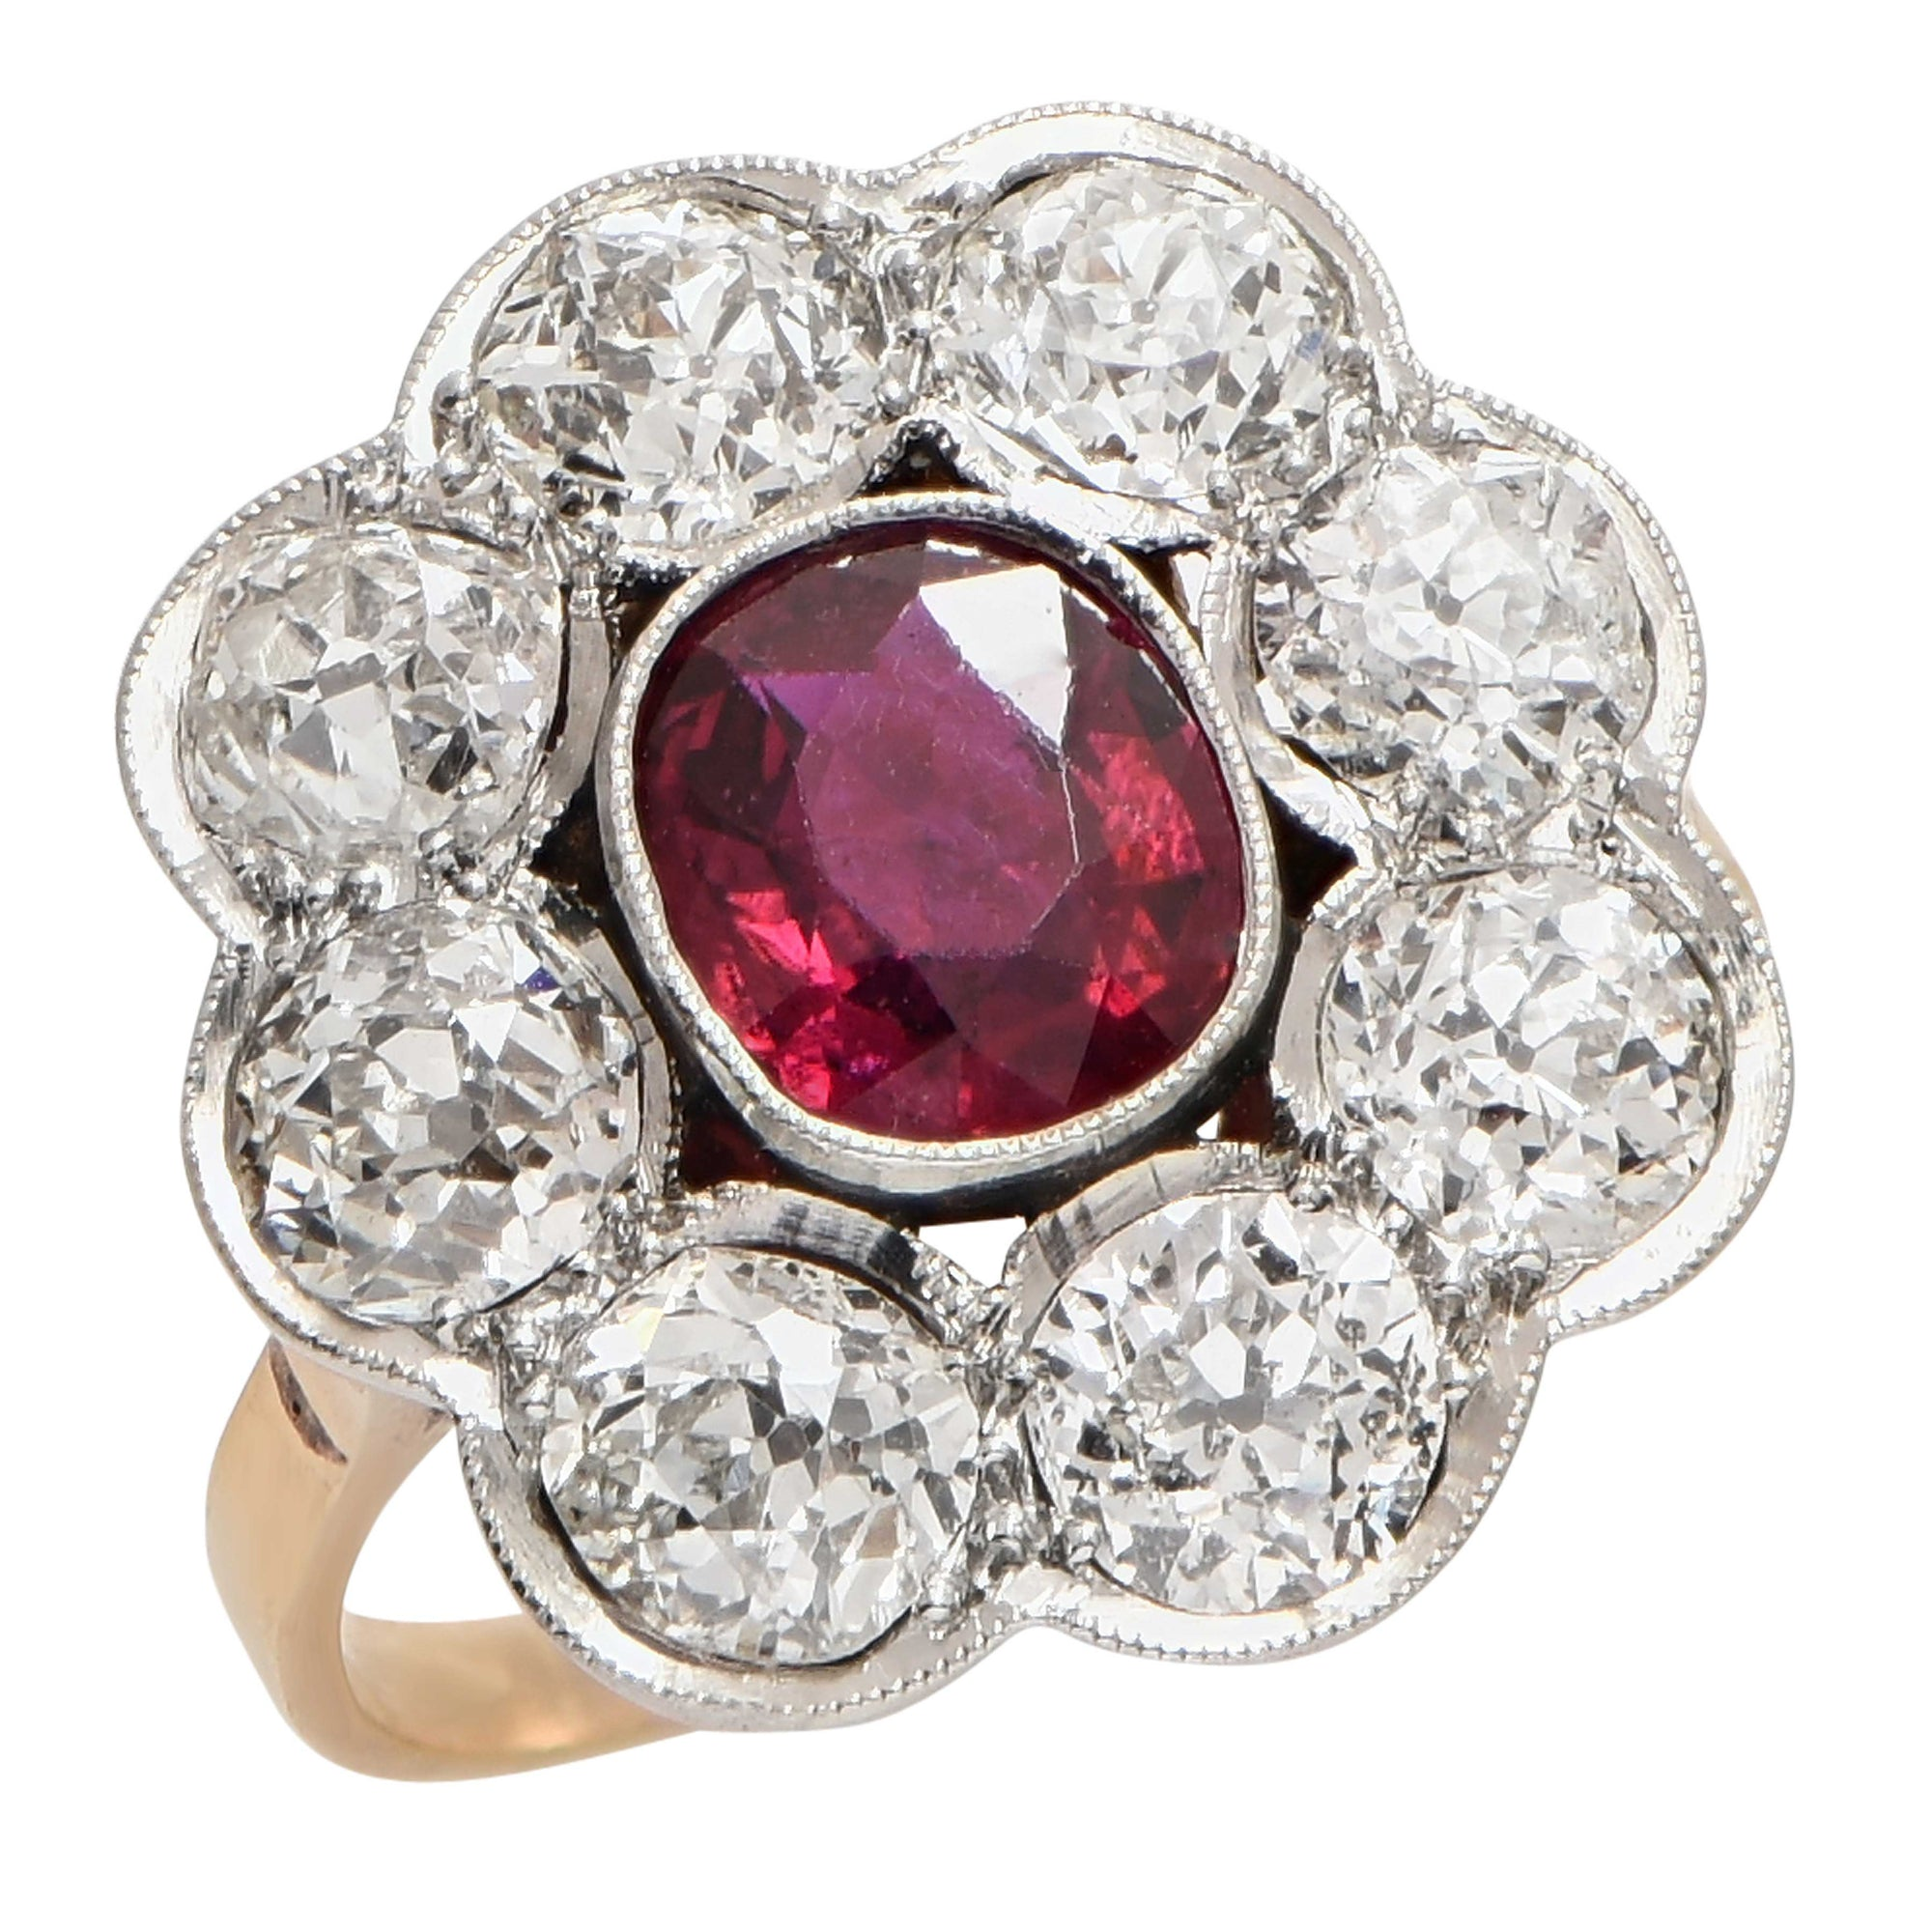 Rubellite Old Mine Cut Diamond Ring